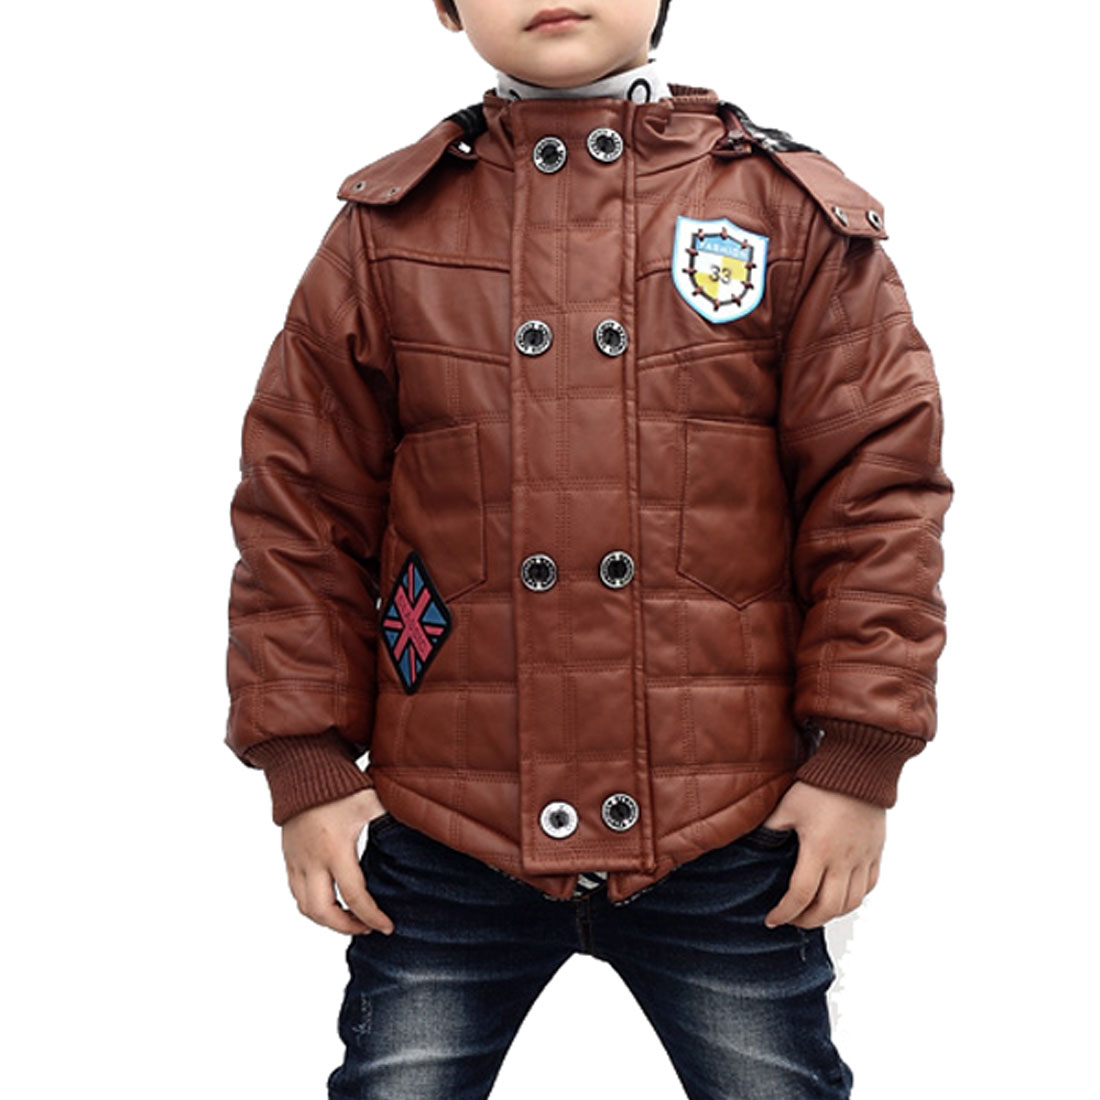 Chic Light Brown Long Sleeve Fleece Lined Faux Leather Jacket for Boys 7